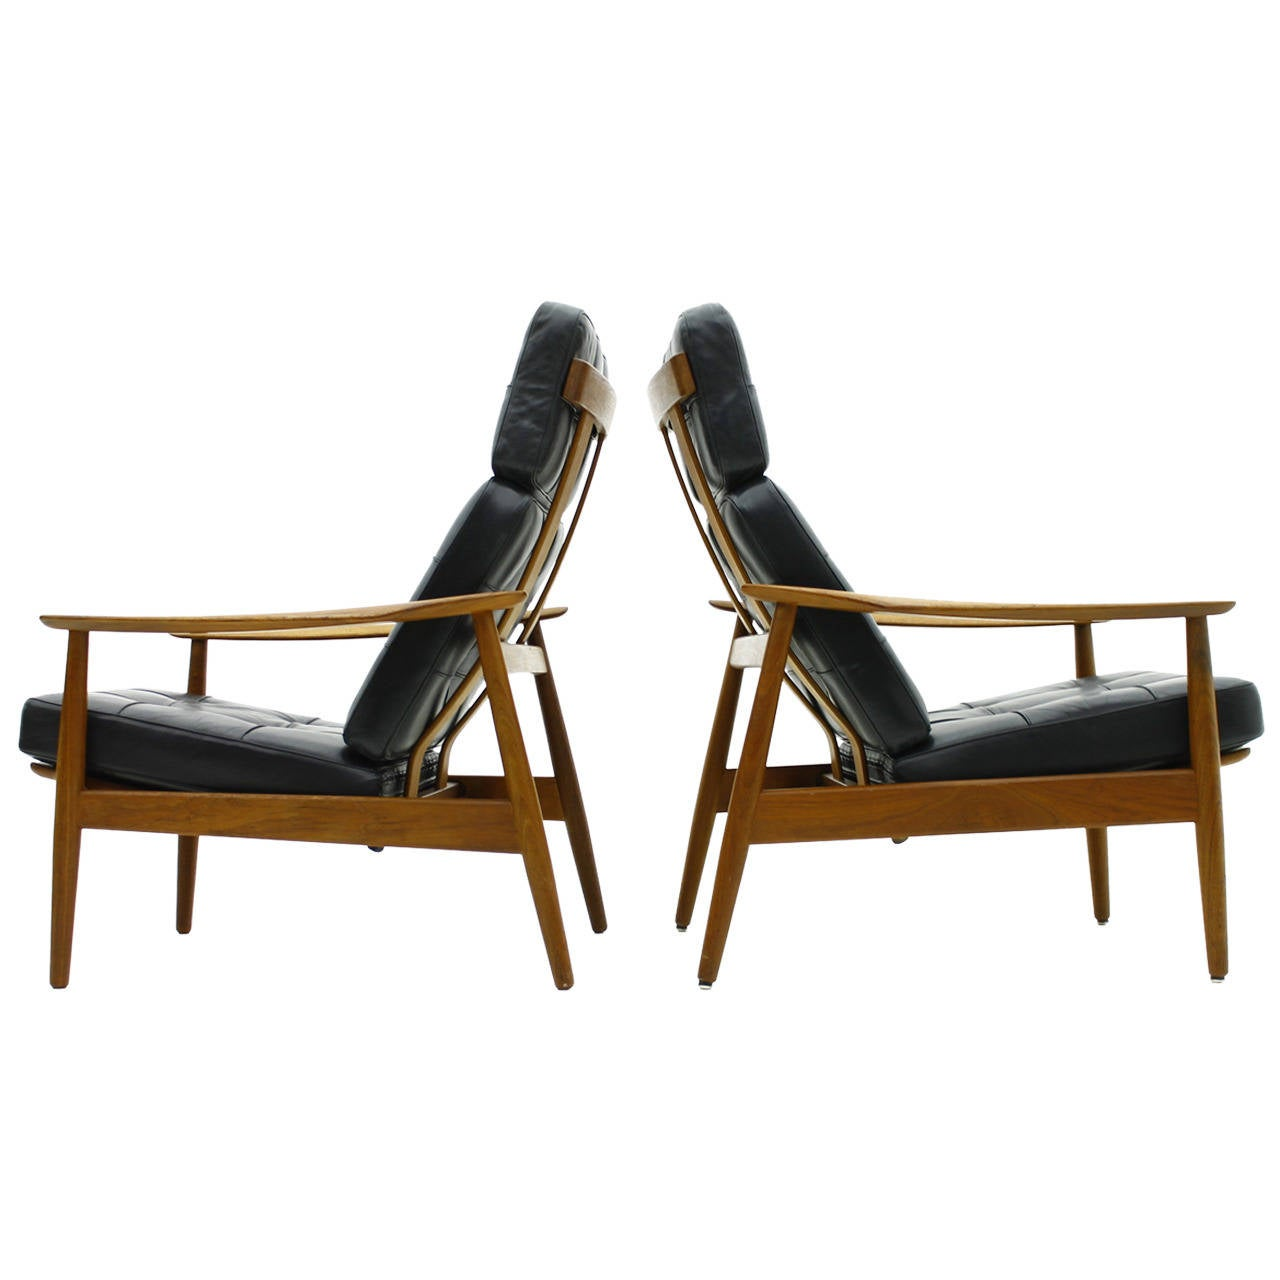 Danish Reclining Lounge Chairs Teak and Leather by Arne Vodder 1960  sc 1 st  1stDibs : reclining easy chairs - islam-shia.org